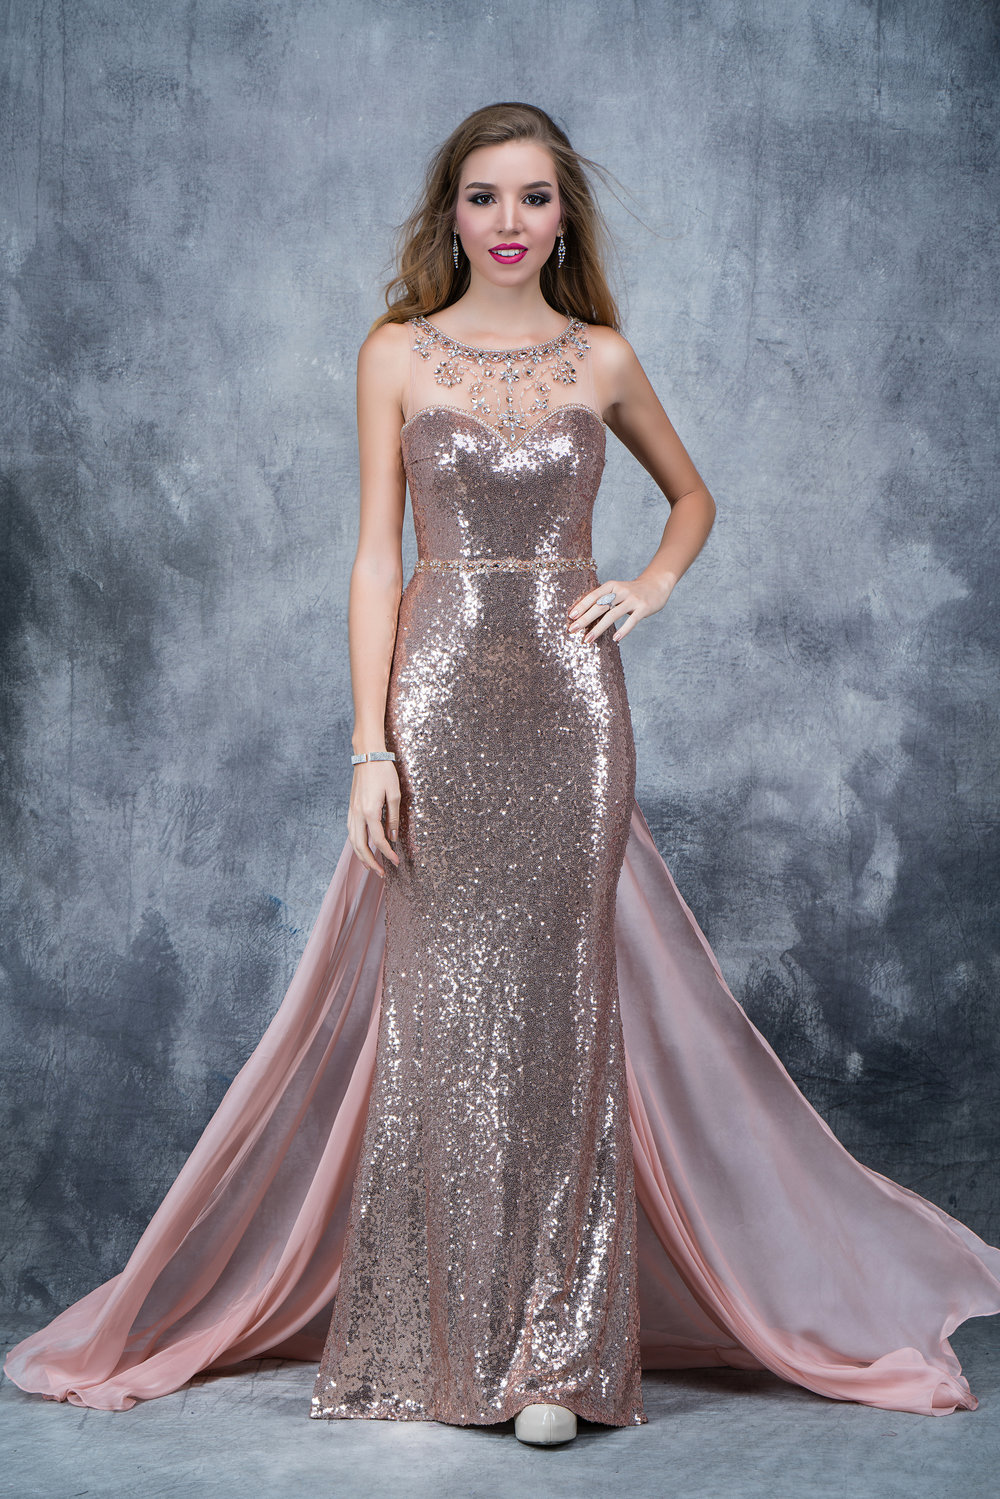 1346_ROSE GOLD14463 copy.jpg